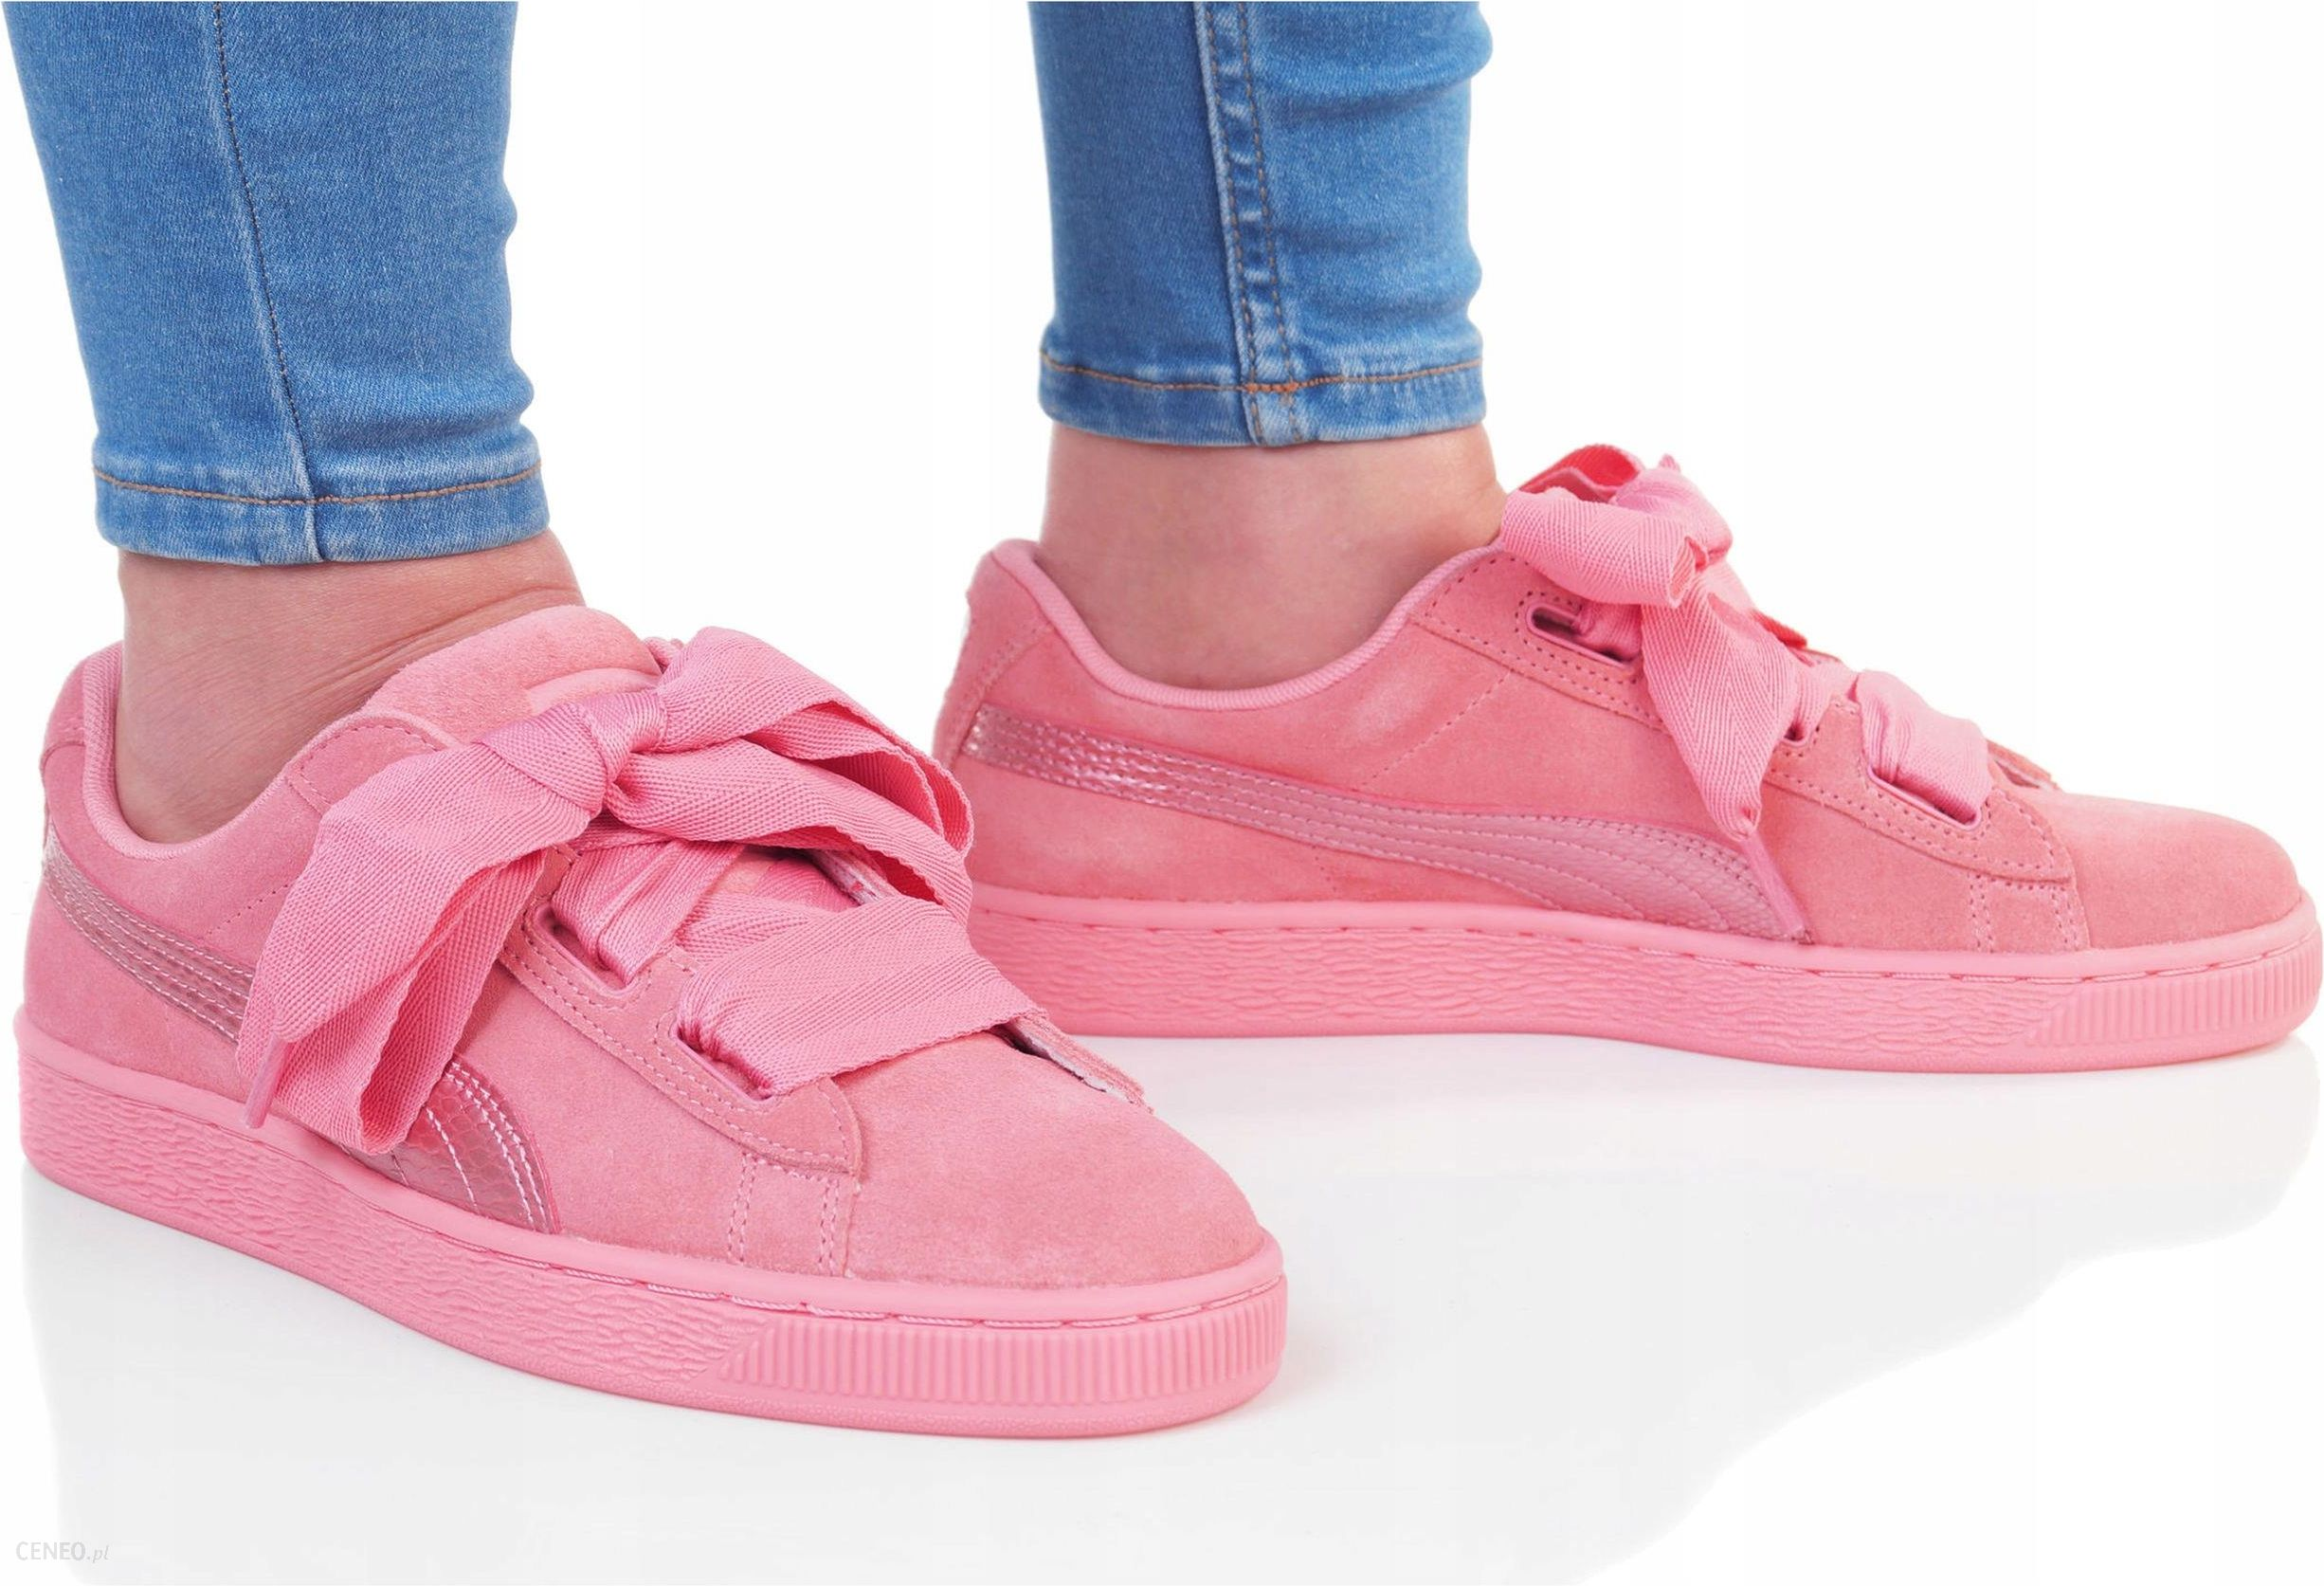 3aa313c4d Puma Suede Heart Snk Jr 364918 05 R. 38.5 - Ceny i opinie - Ceneo.pl